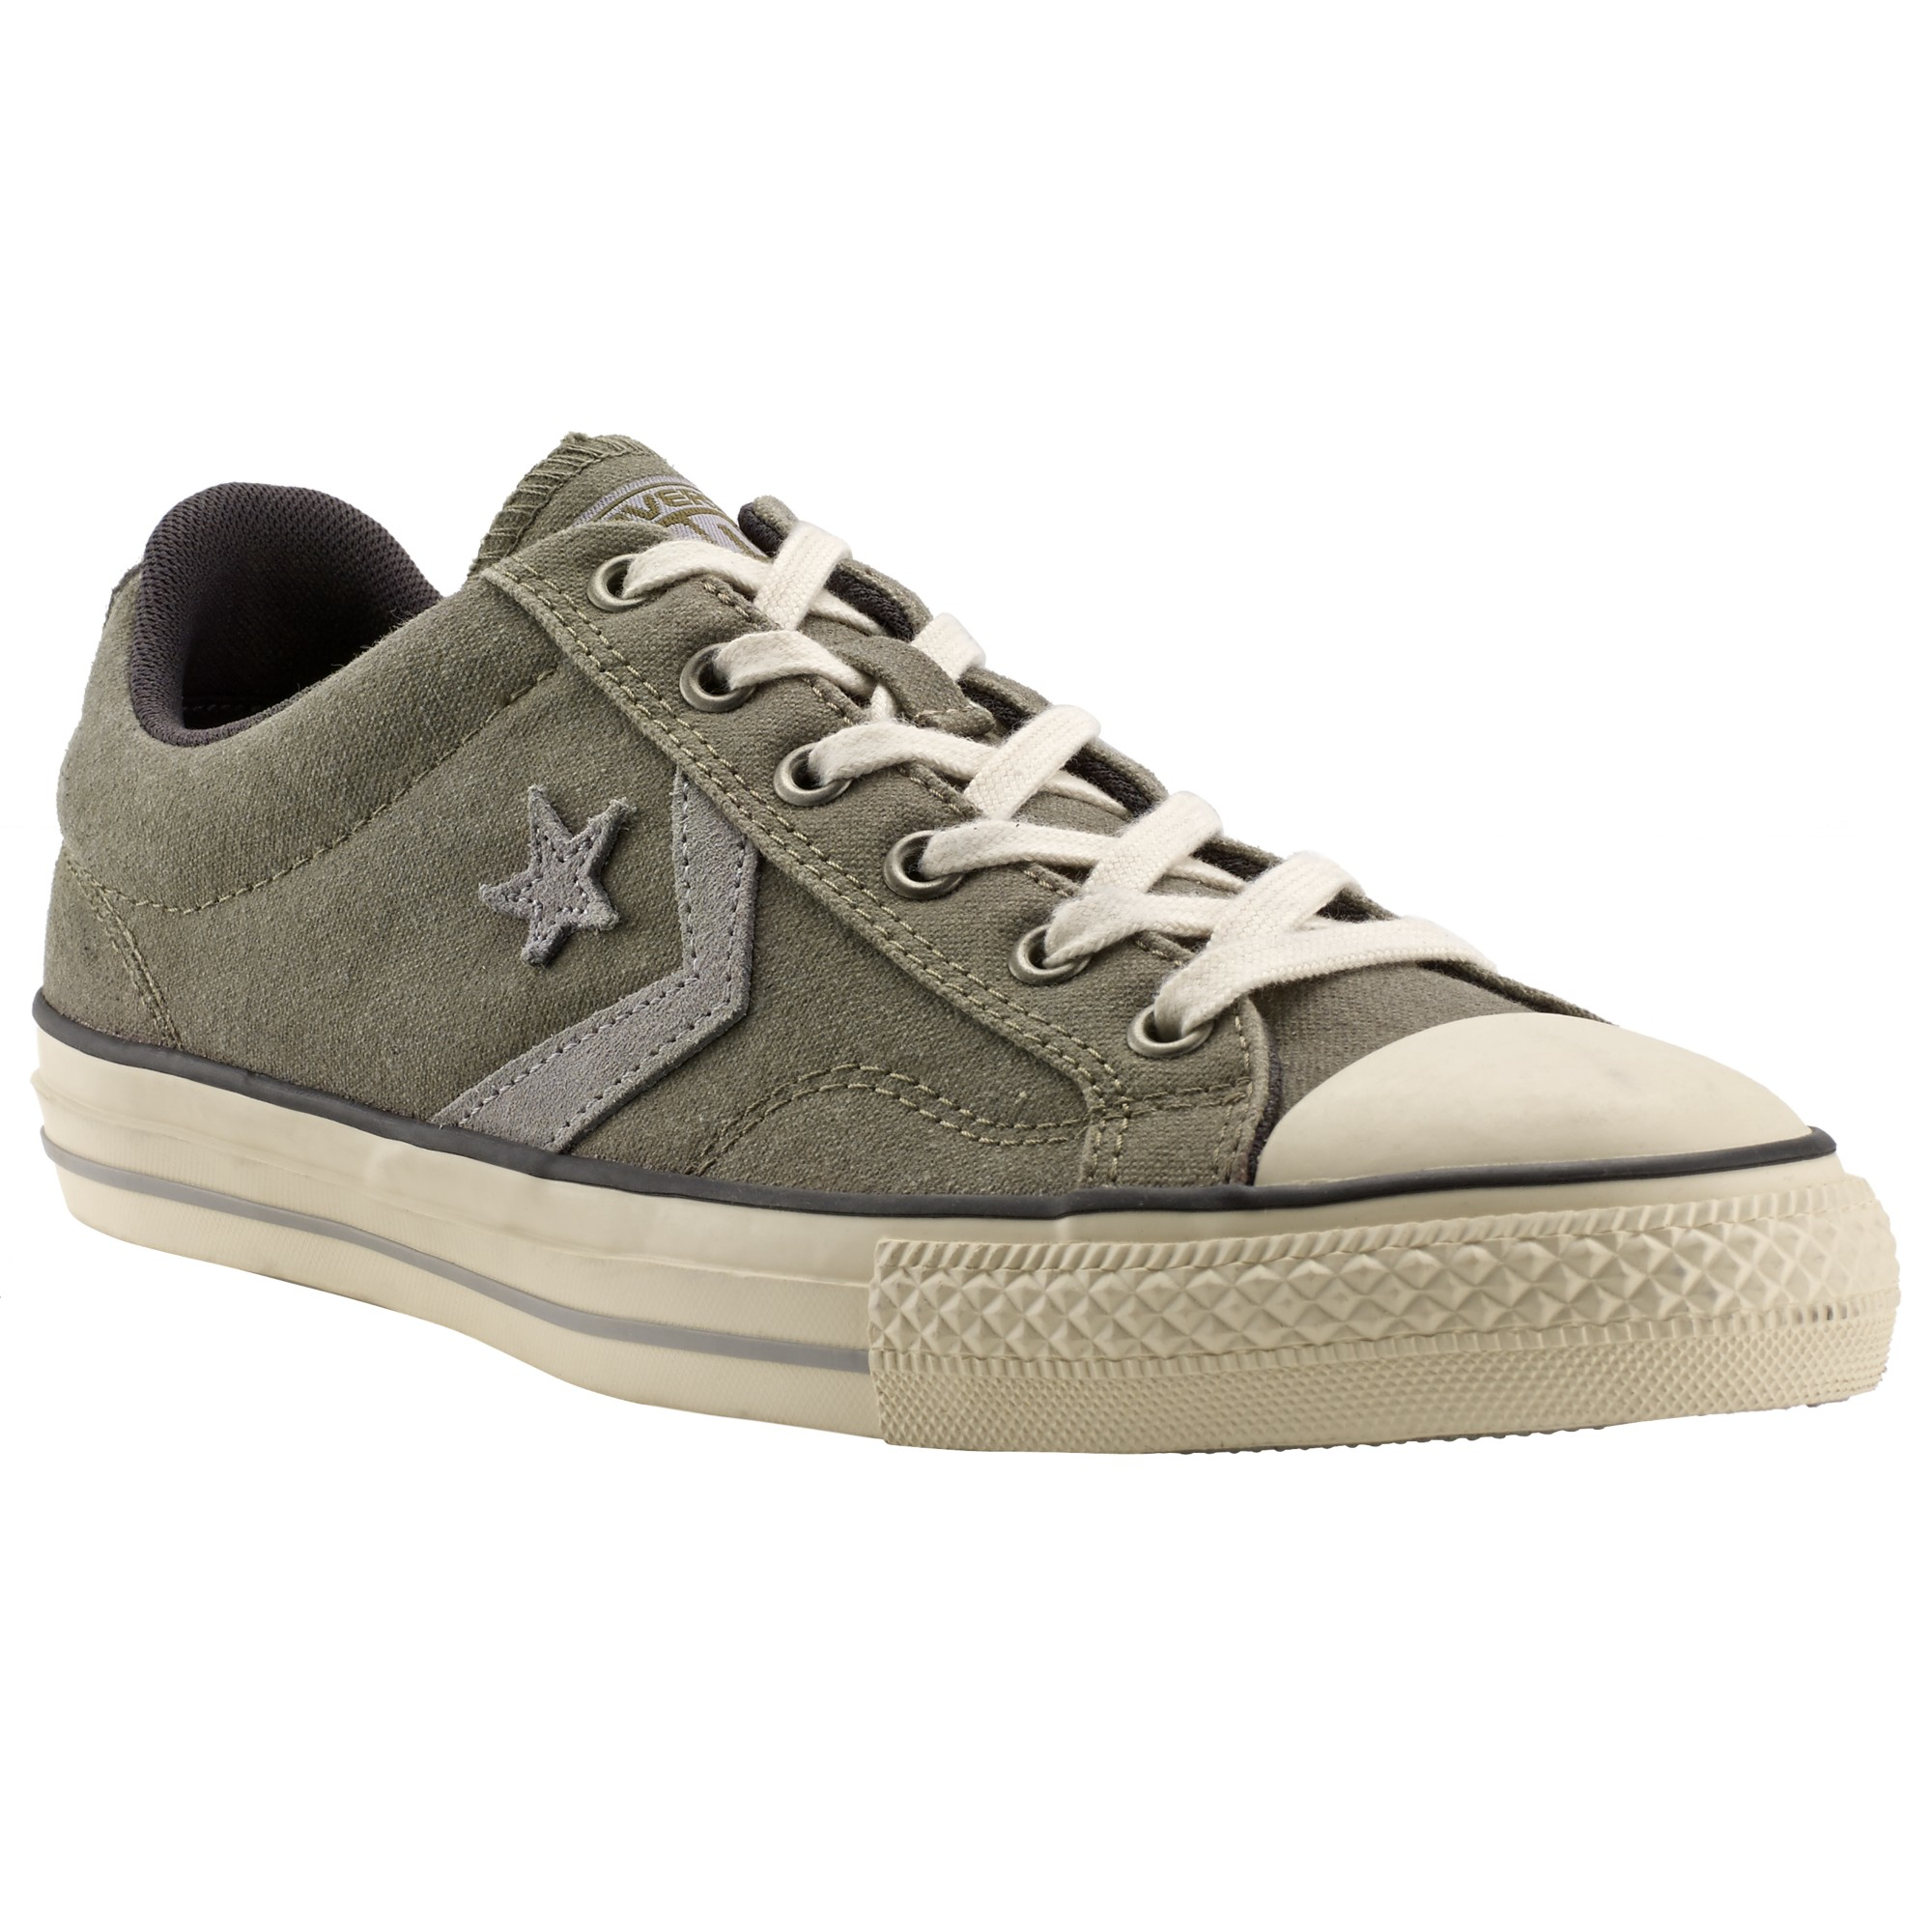 Converse Cons Star Player Ox Trainers in Green for Men - Lyst 8d399cbaa